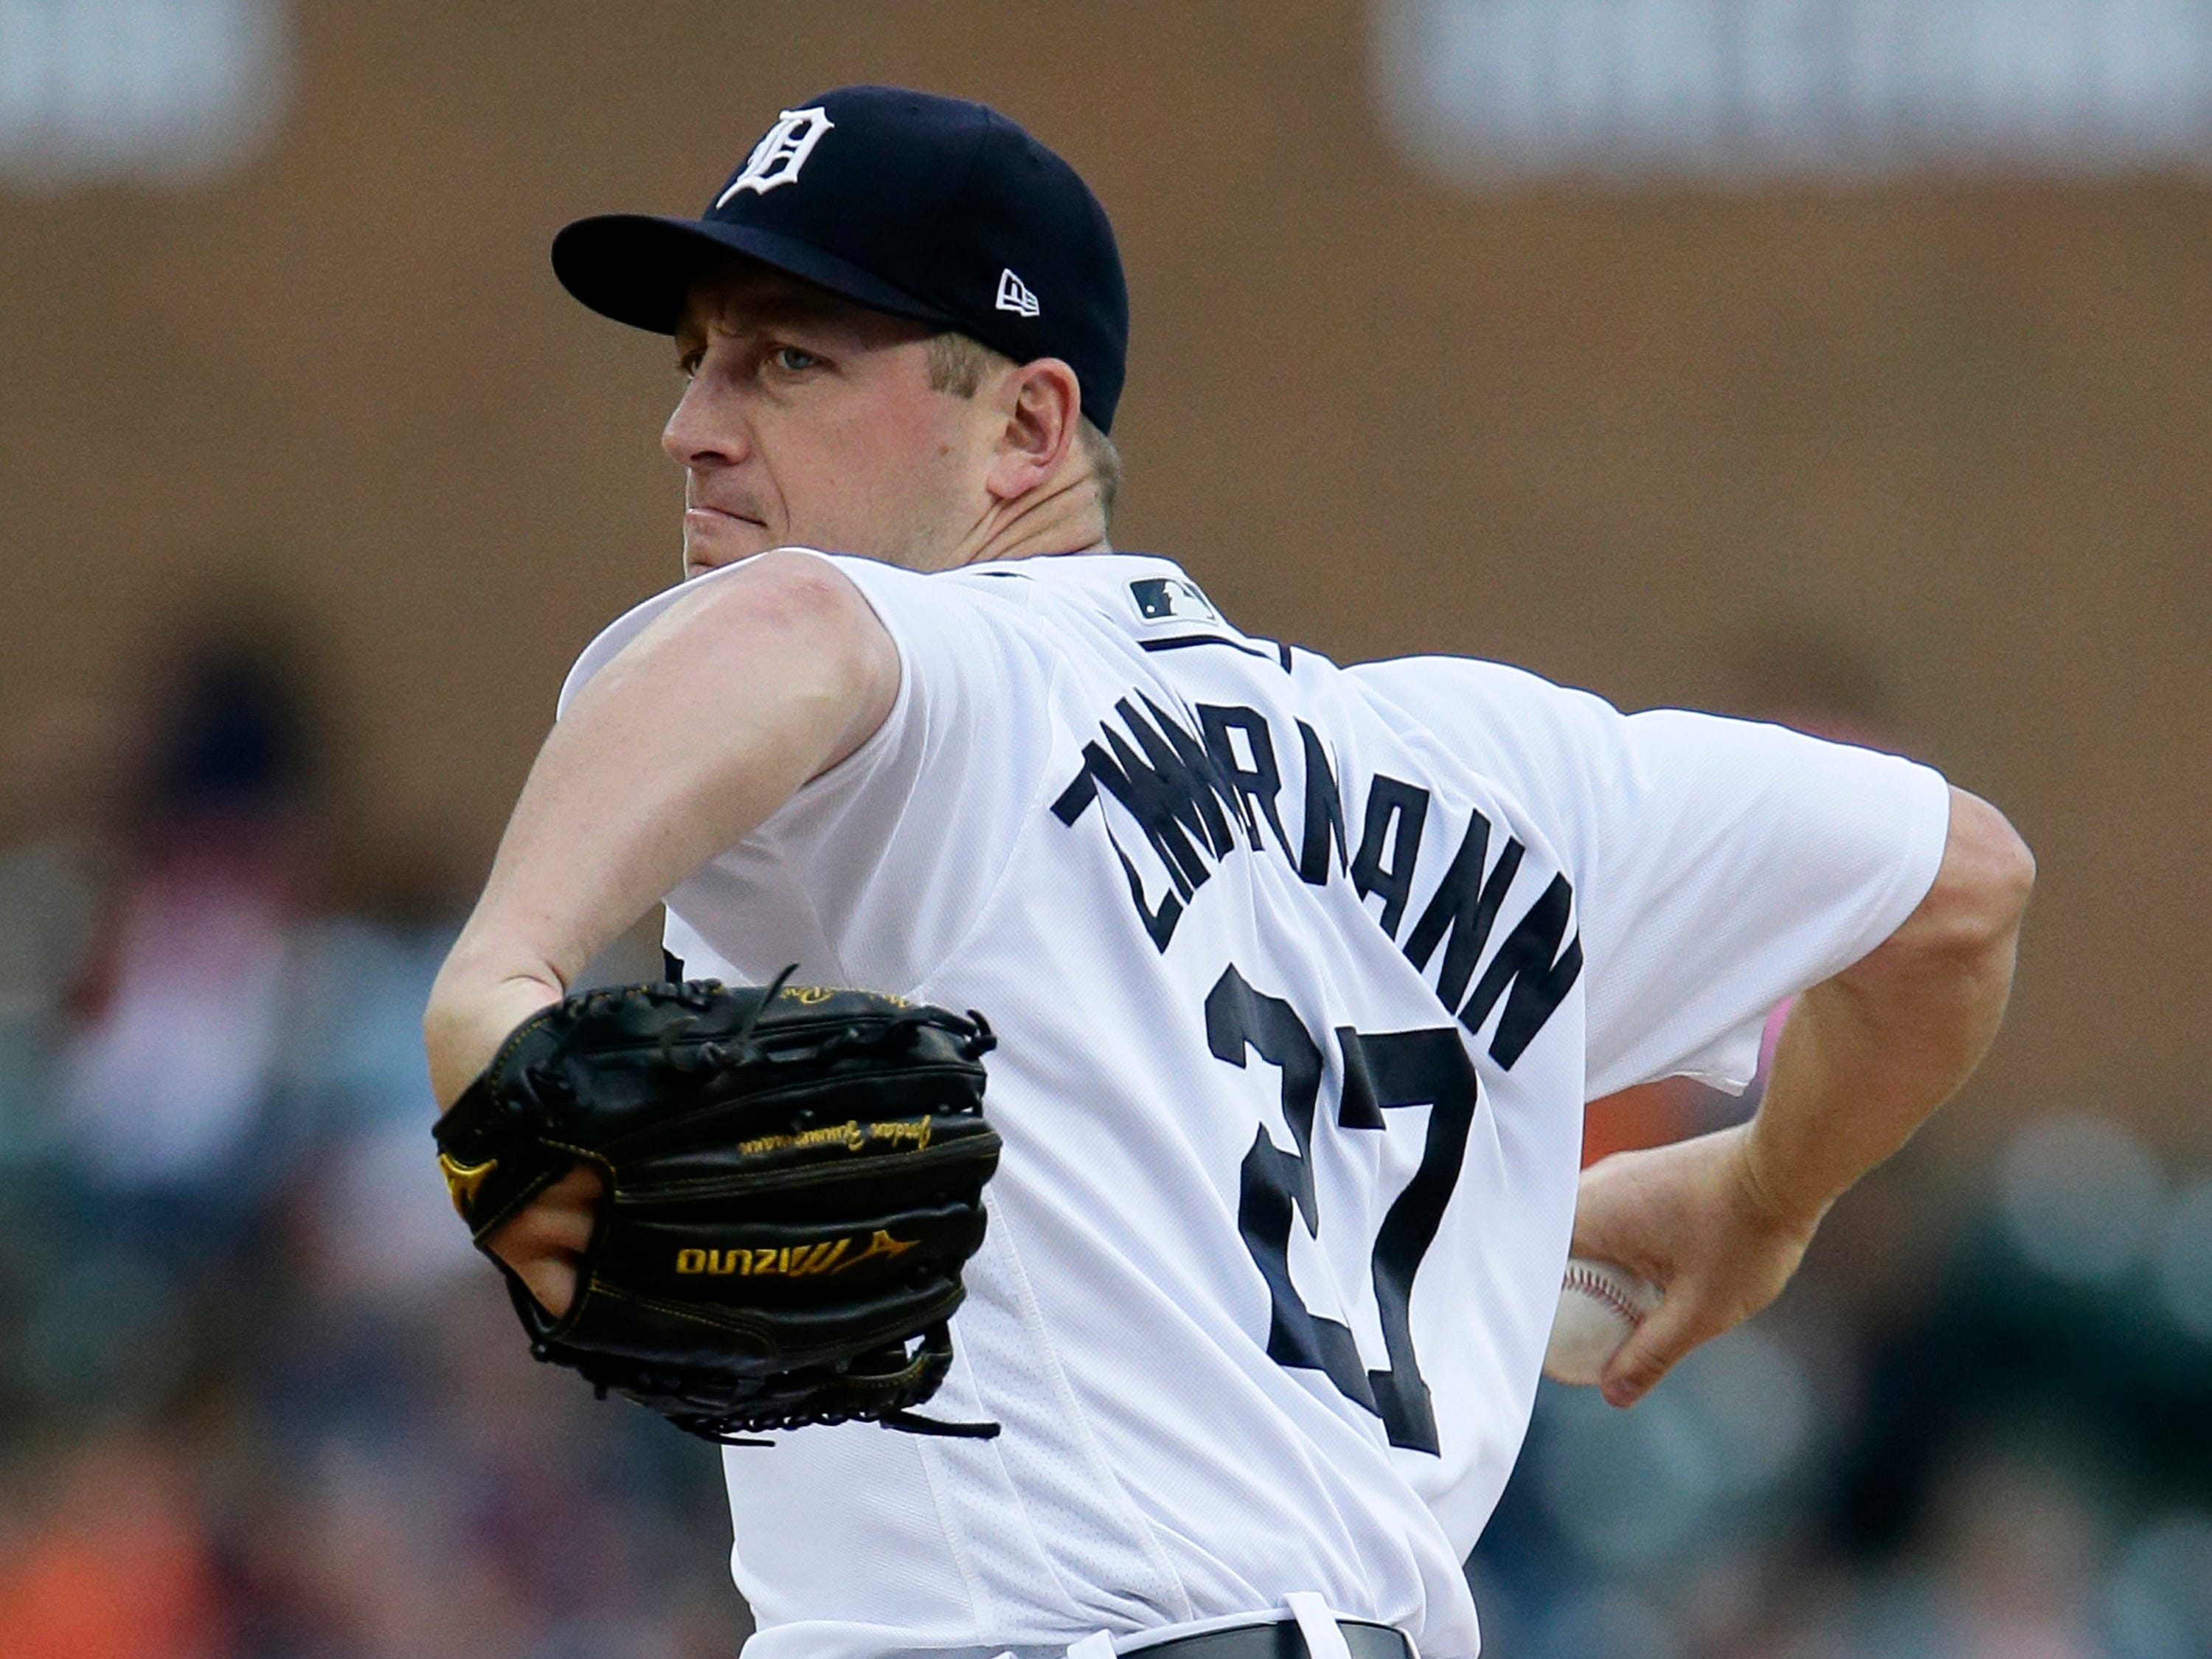 Detroit Tigers' Jordan Zimmermann pitches against the Kansas City Royals during the second inning at Comerica Park on Sept. 22, 2018 in Detroit.